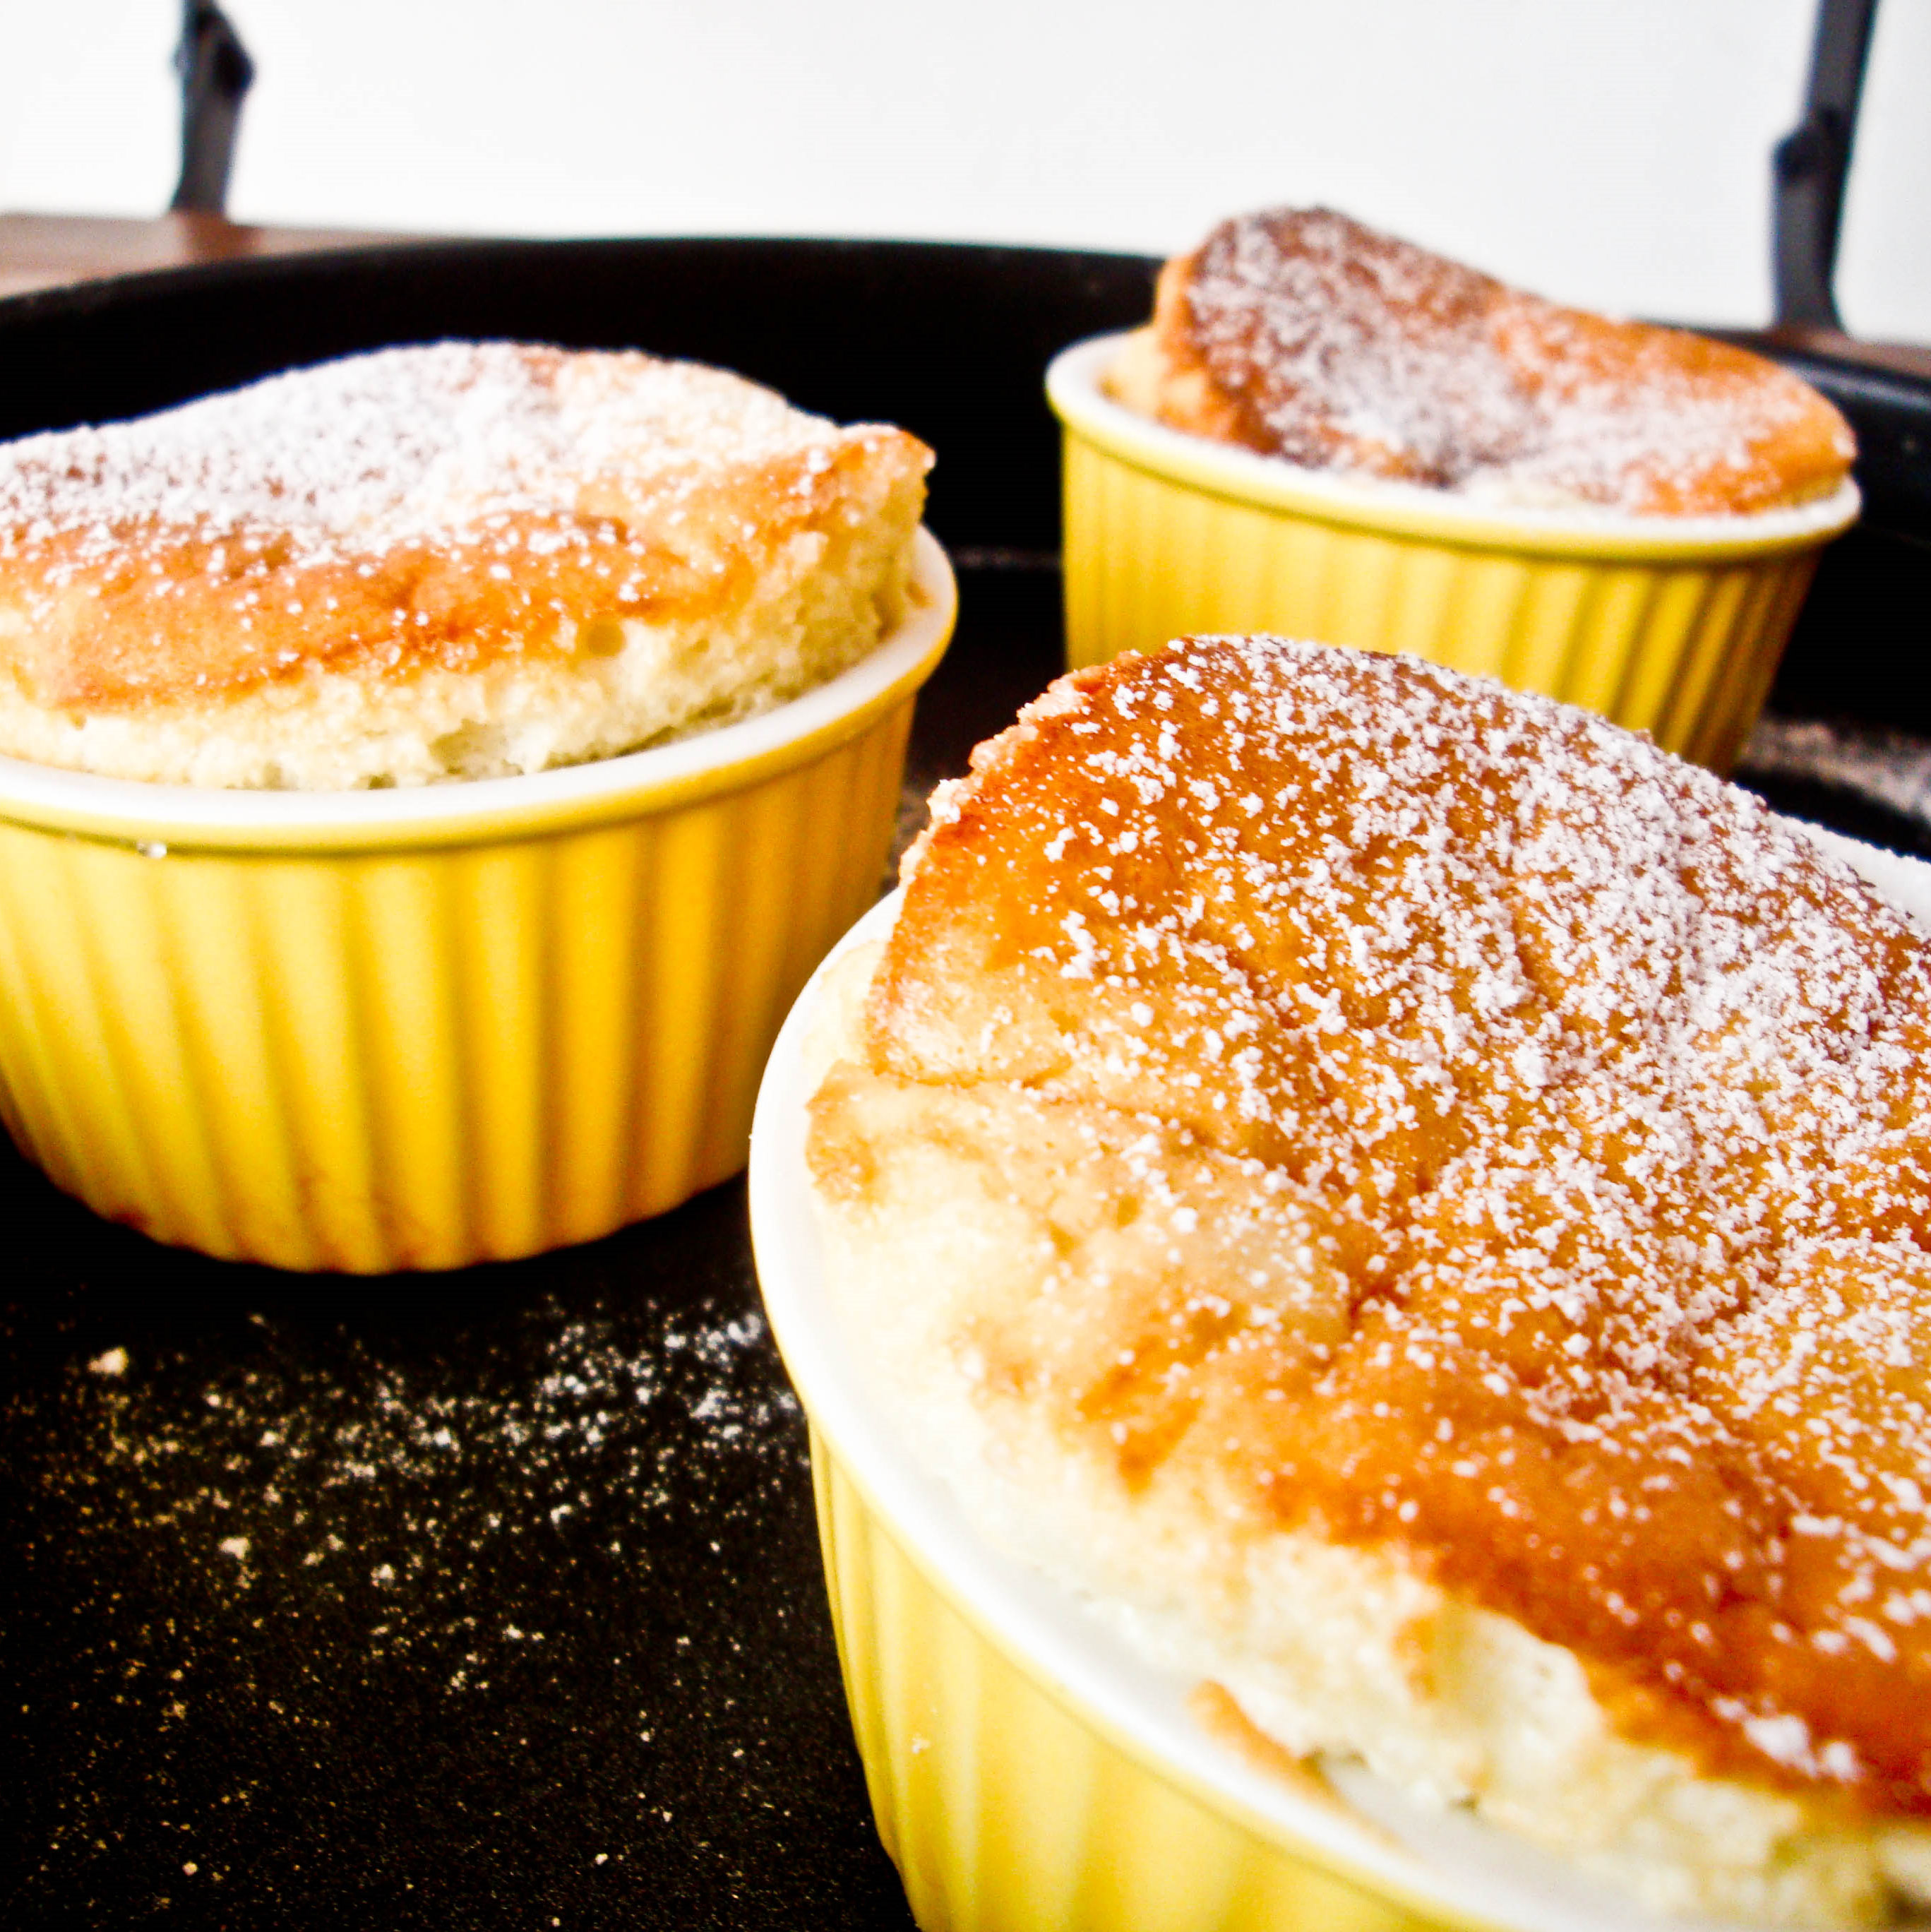 LAVENDER & LEMON SOUFFLE - The Novice Housewife